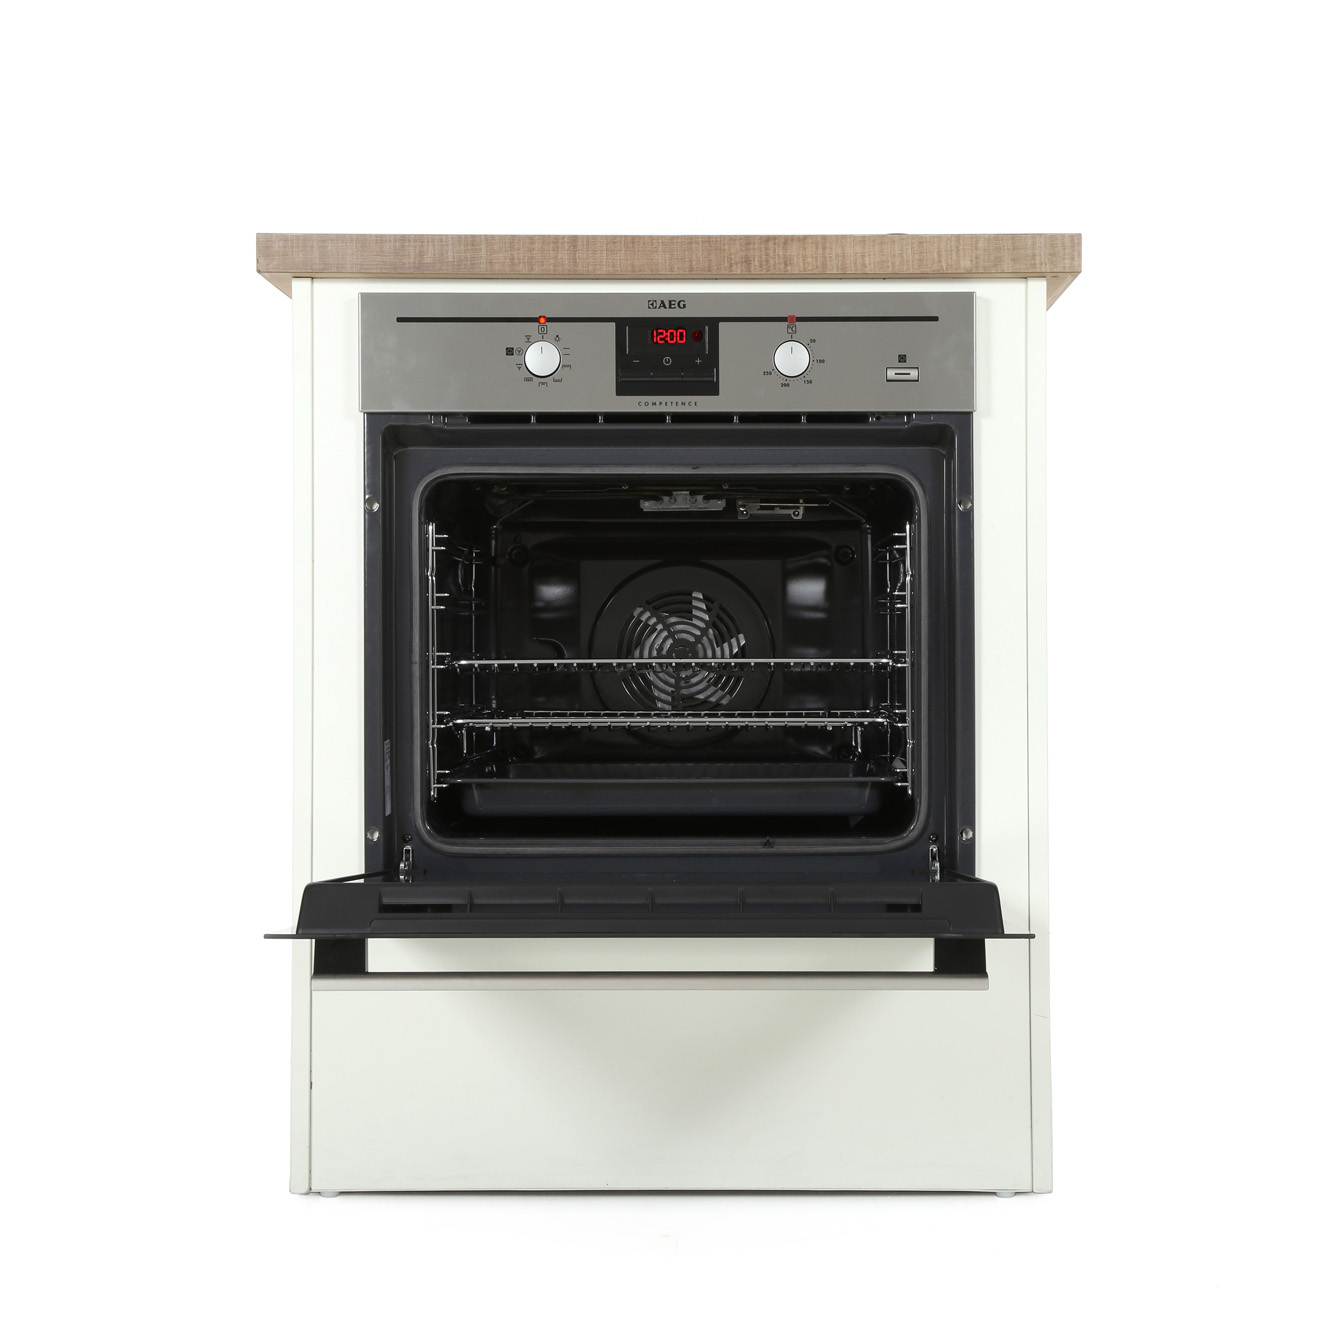 Buy aeg be330362km single built in electric oven for Aeg ofen